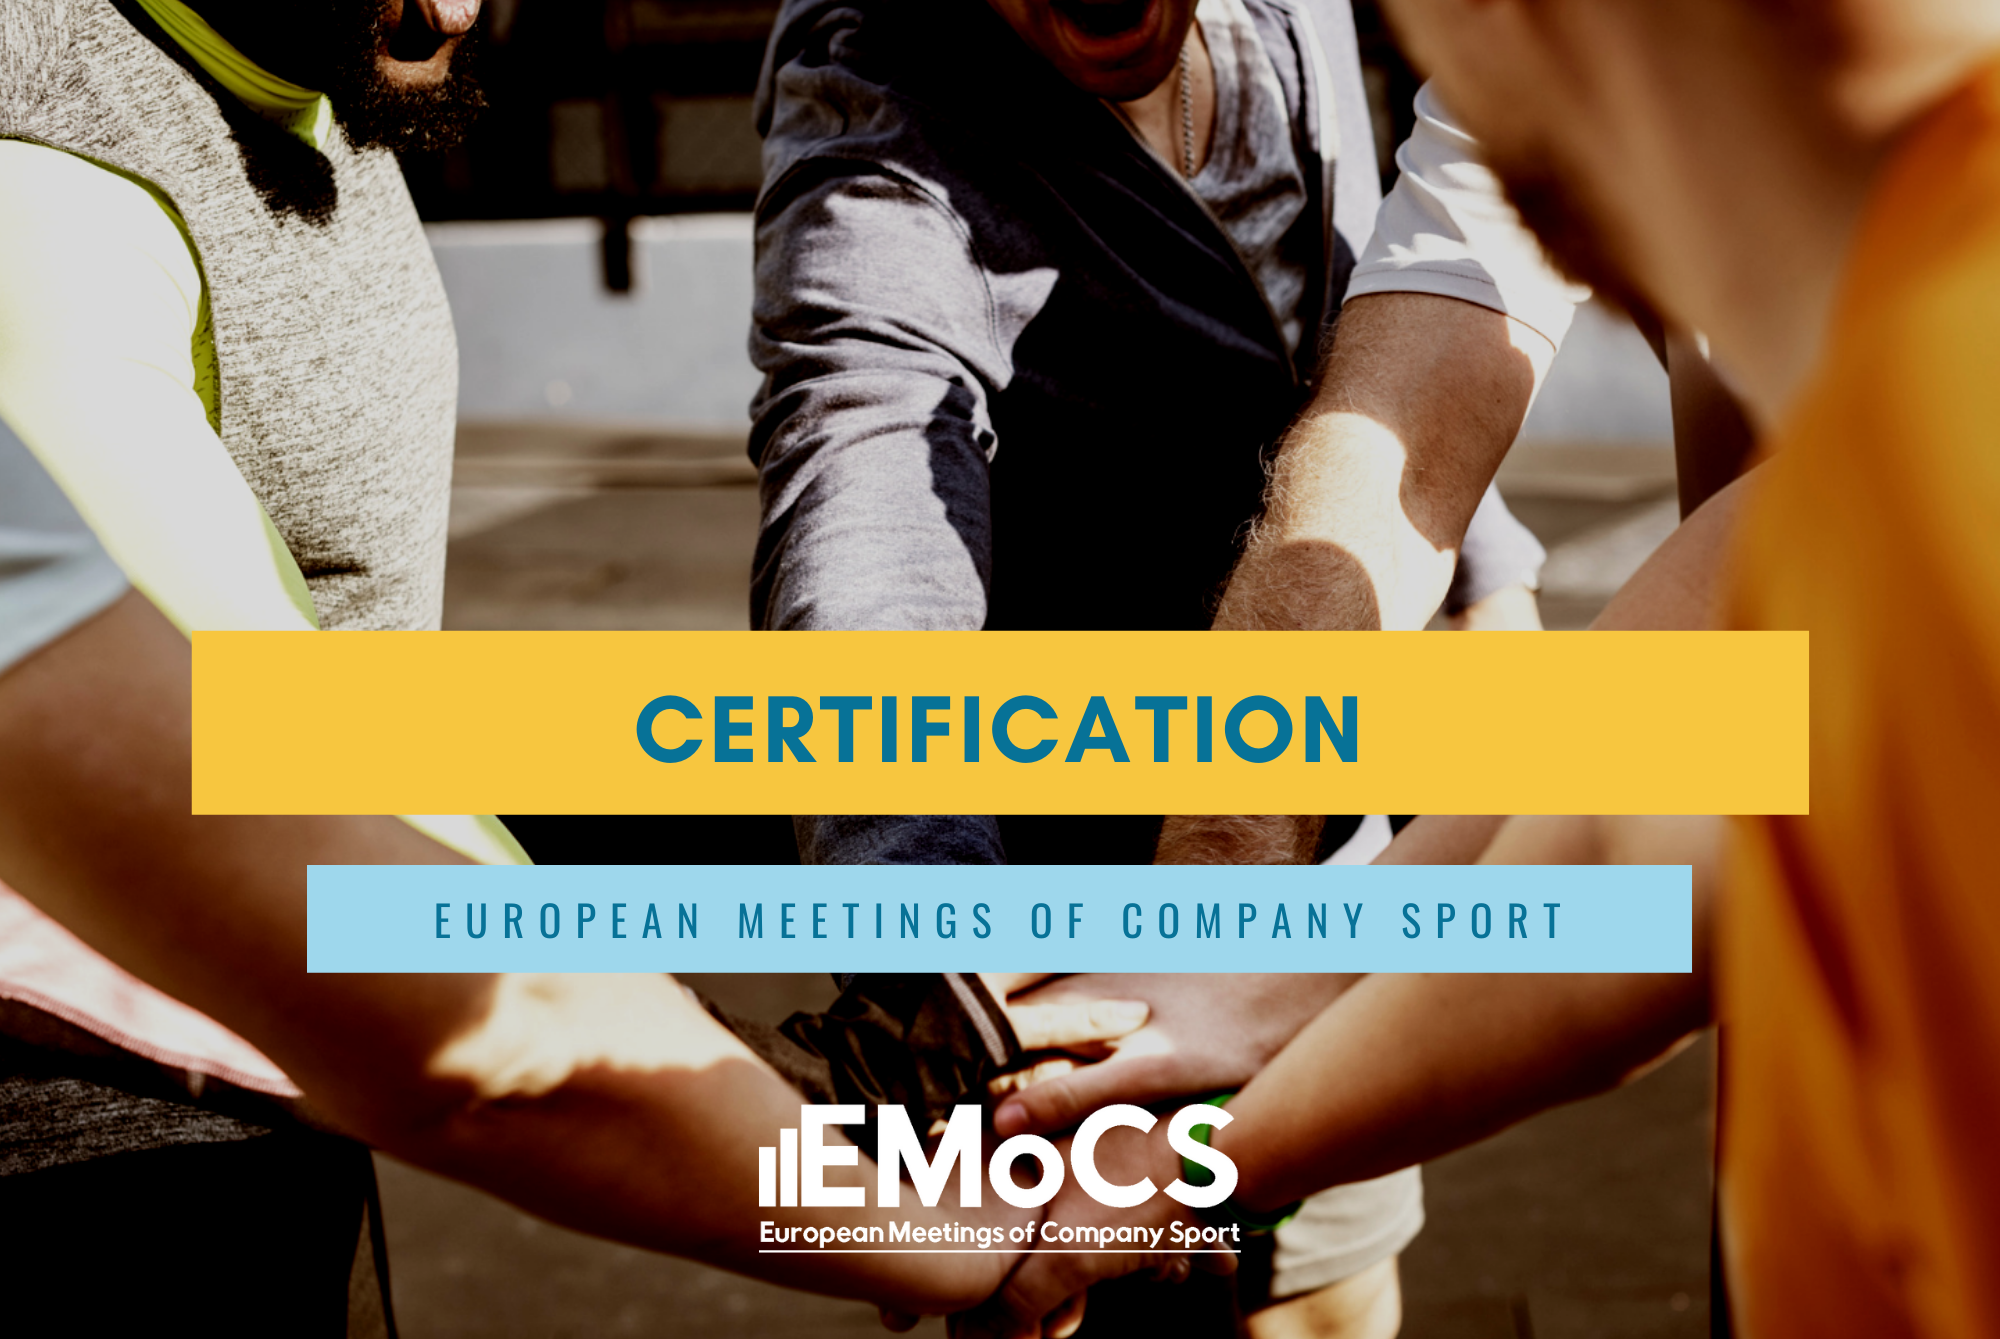 emocs active workplace certification